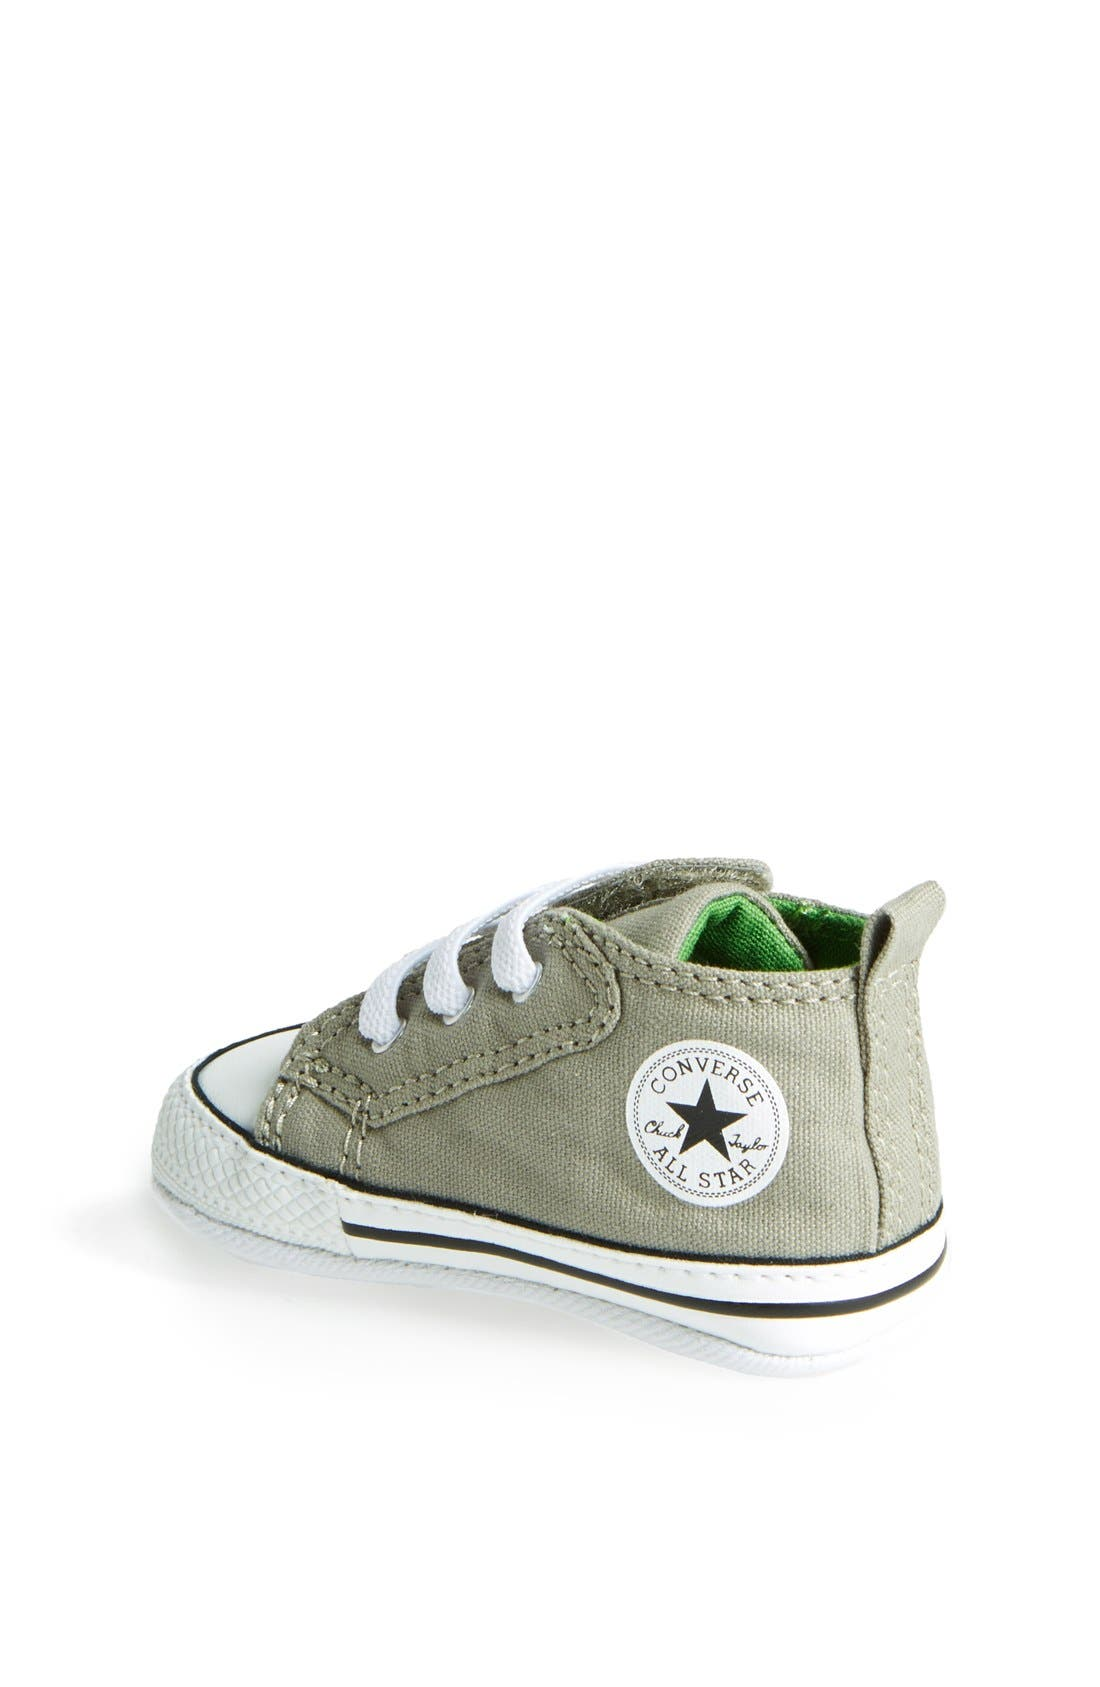 Chuck Taylor<sup>®</sup> Low Top Sneaker,                             Alternate thumbnail 2, color,                             Old Silver